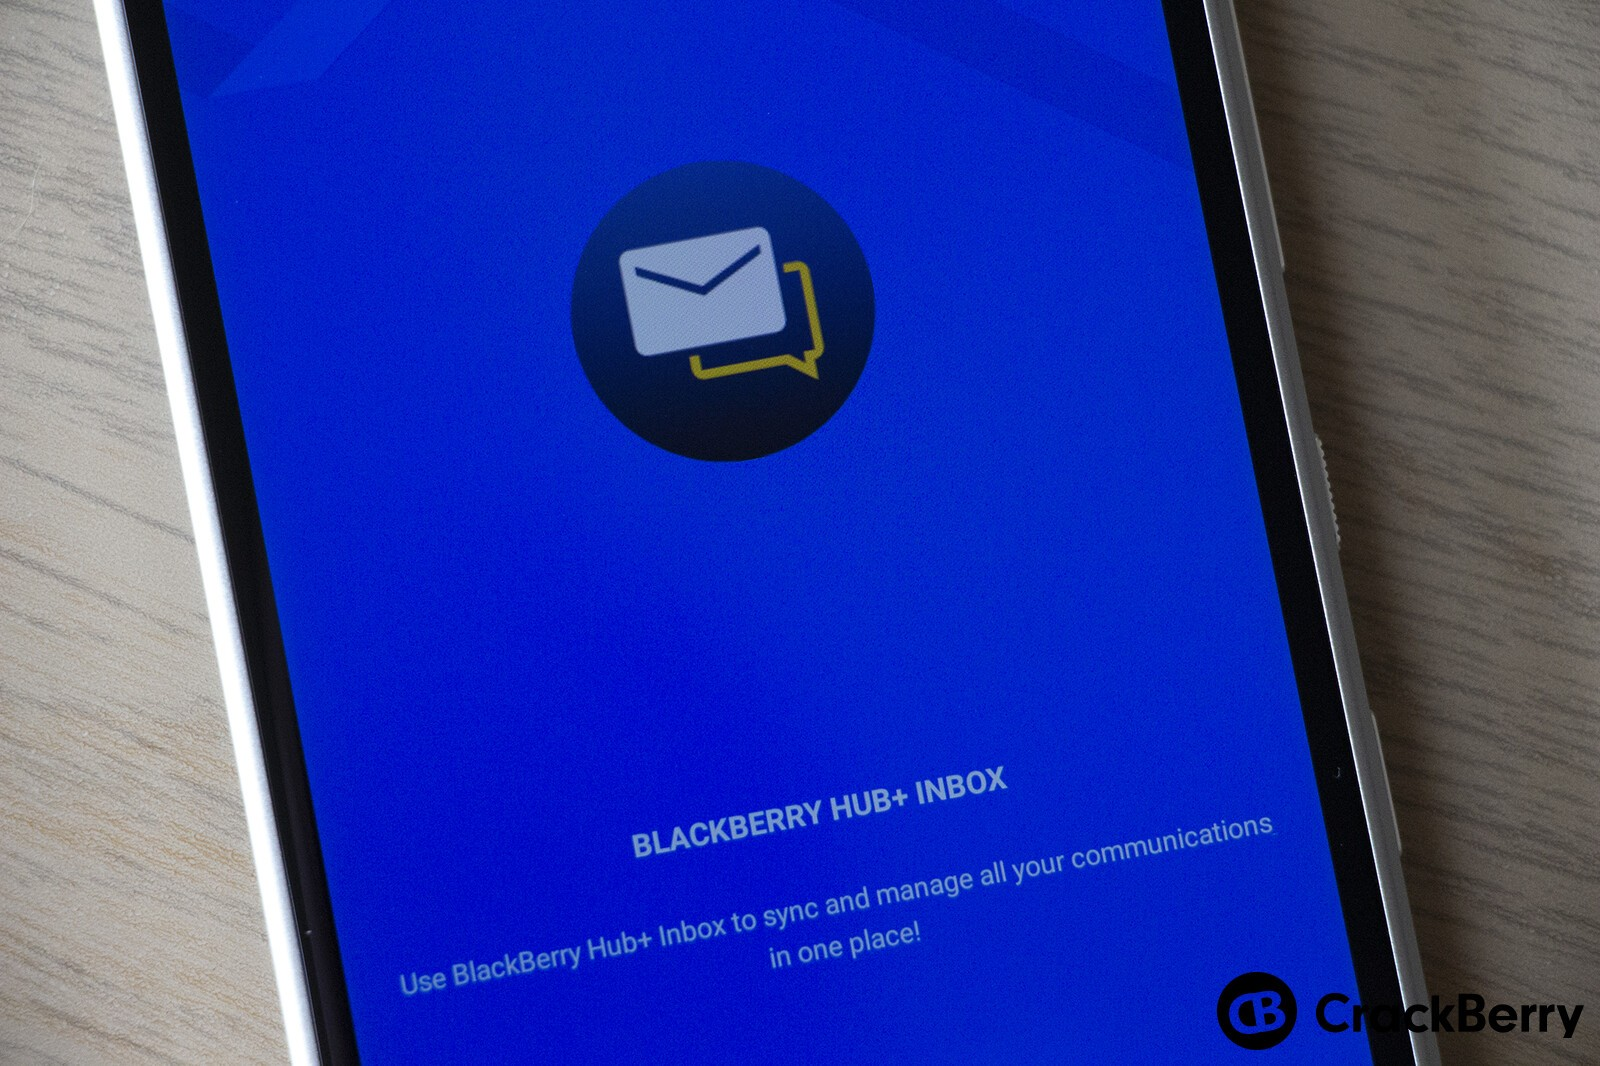 Here are the Android apps that integrate with BlackBerry Hub